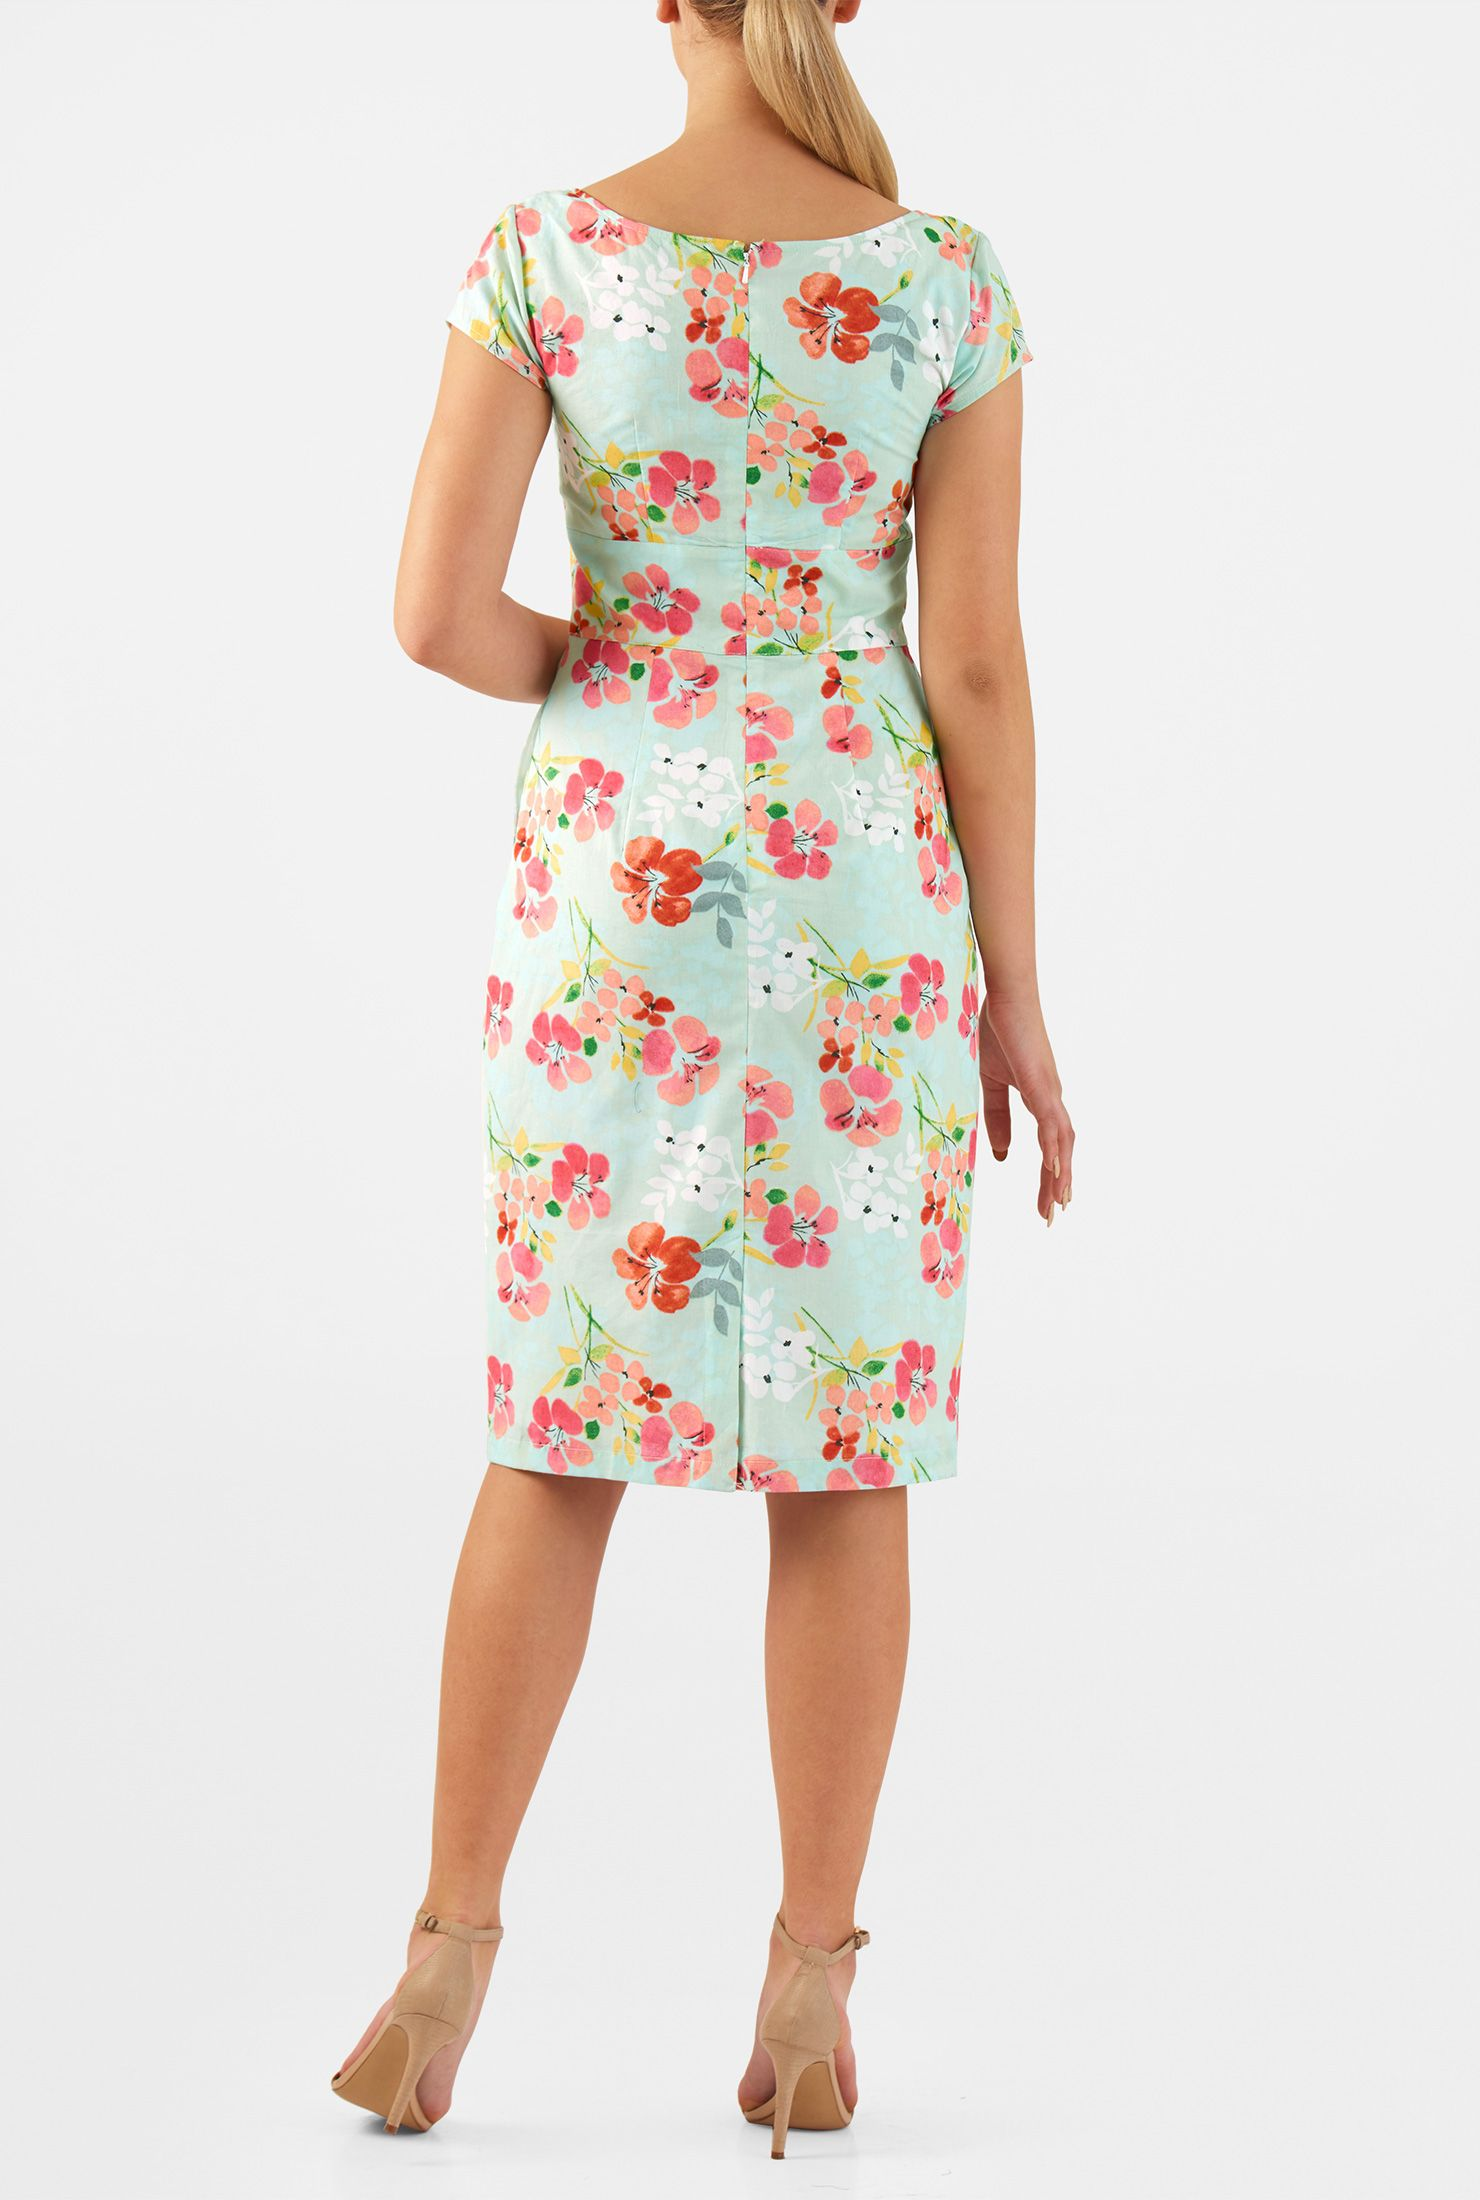 Washed floral cotton print sheath dress pinterest daytime